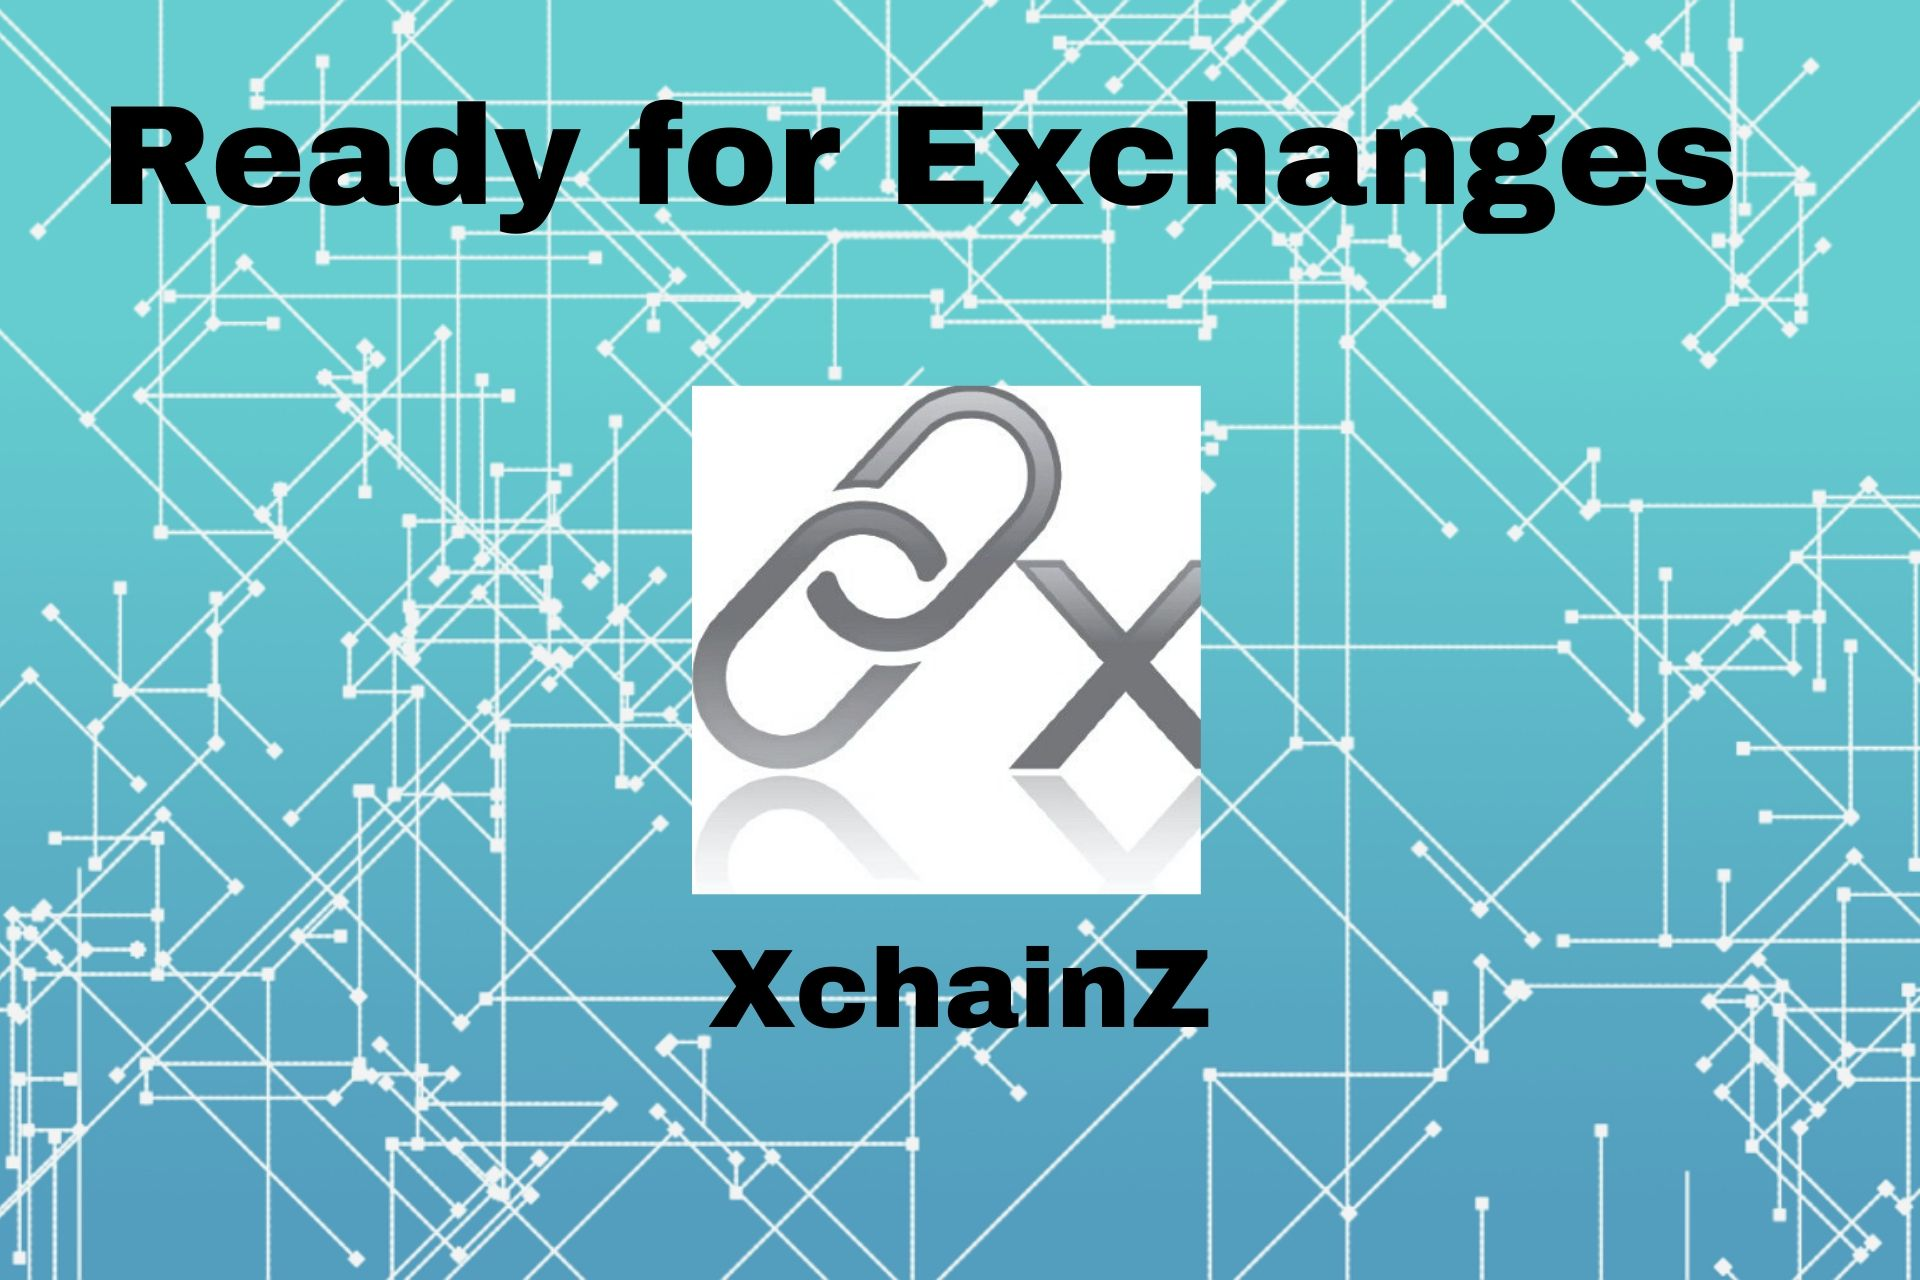 XchainZ is Ready for Exchanges